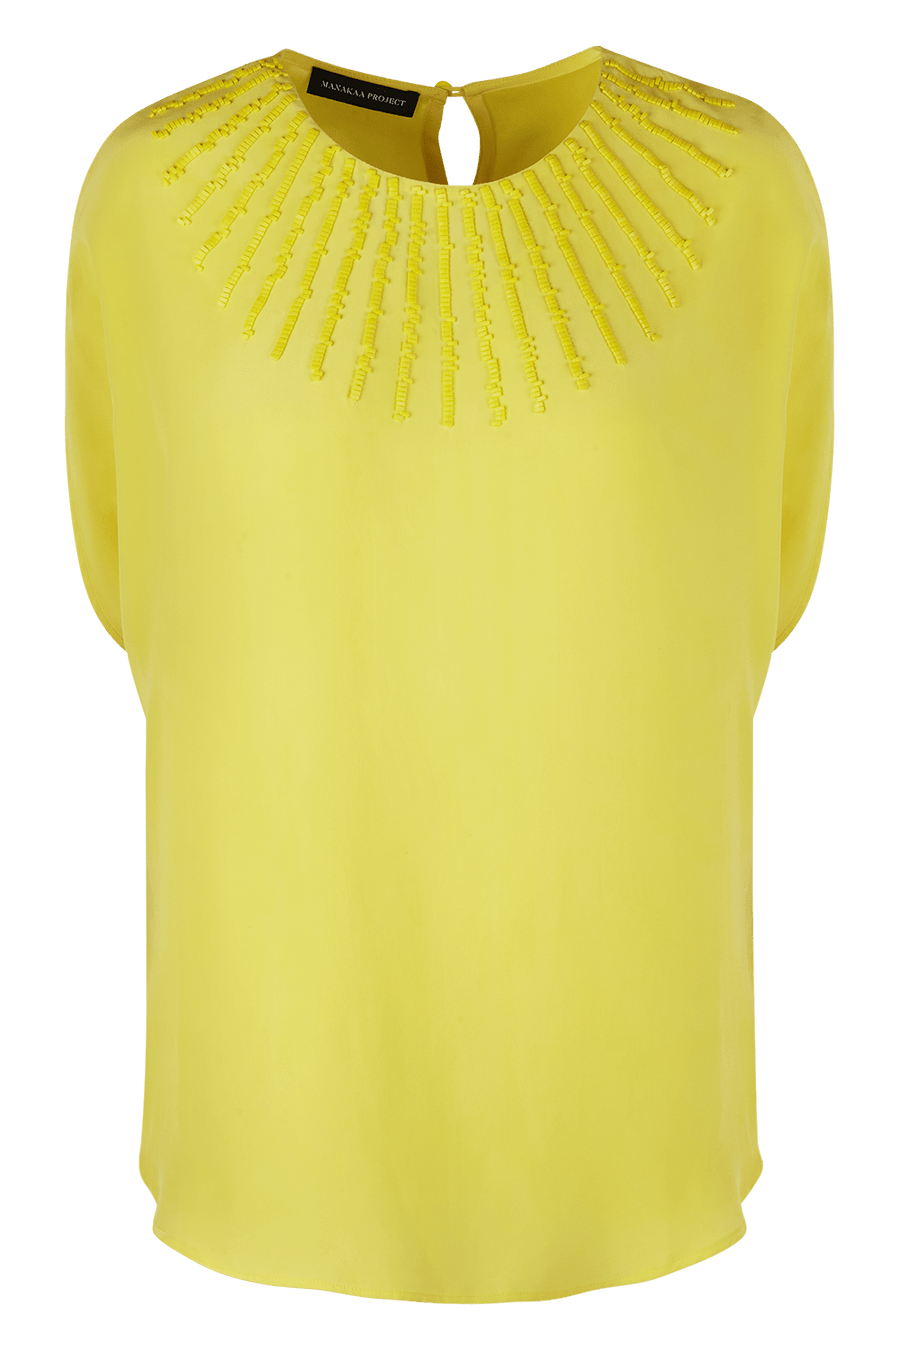 Manakaa Project UG tops Small/Medium / Yellow Silk Shirt in Organic Cotton sustainable fashion ethical fashion